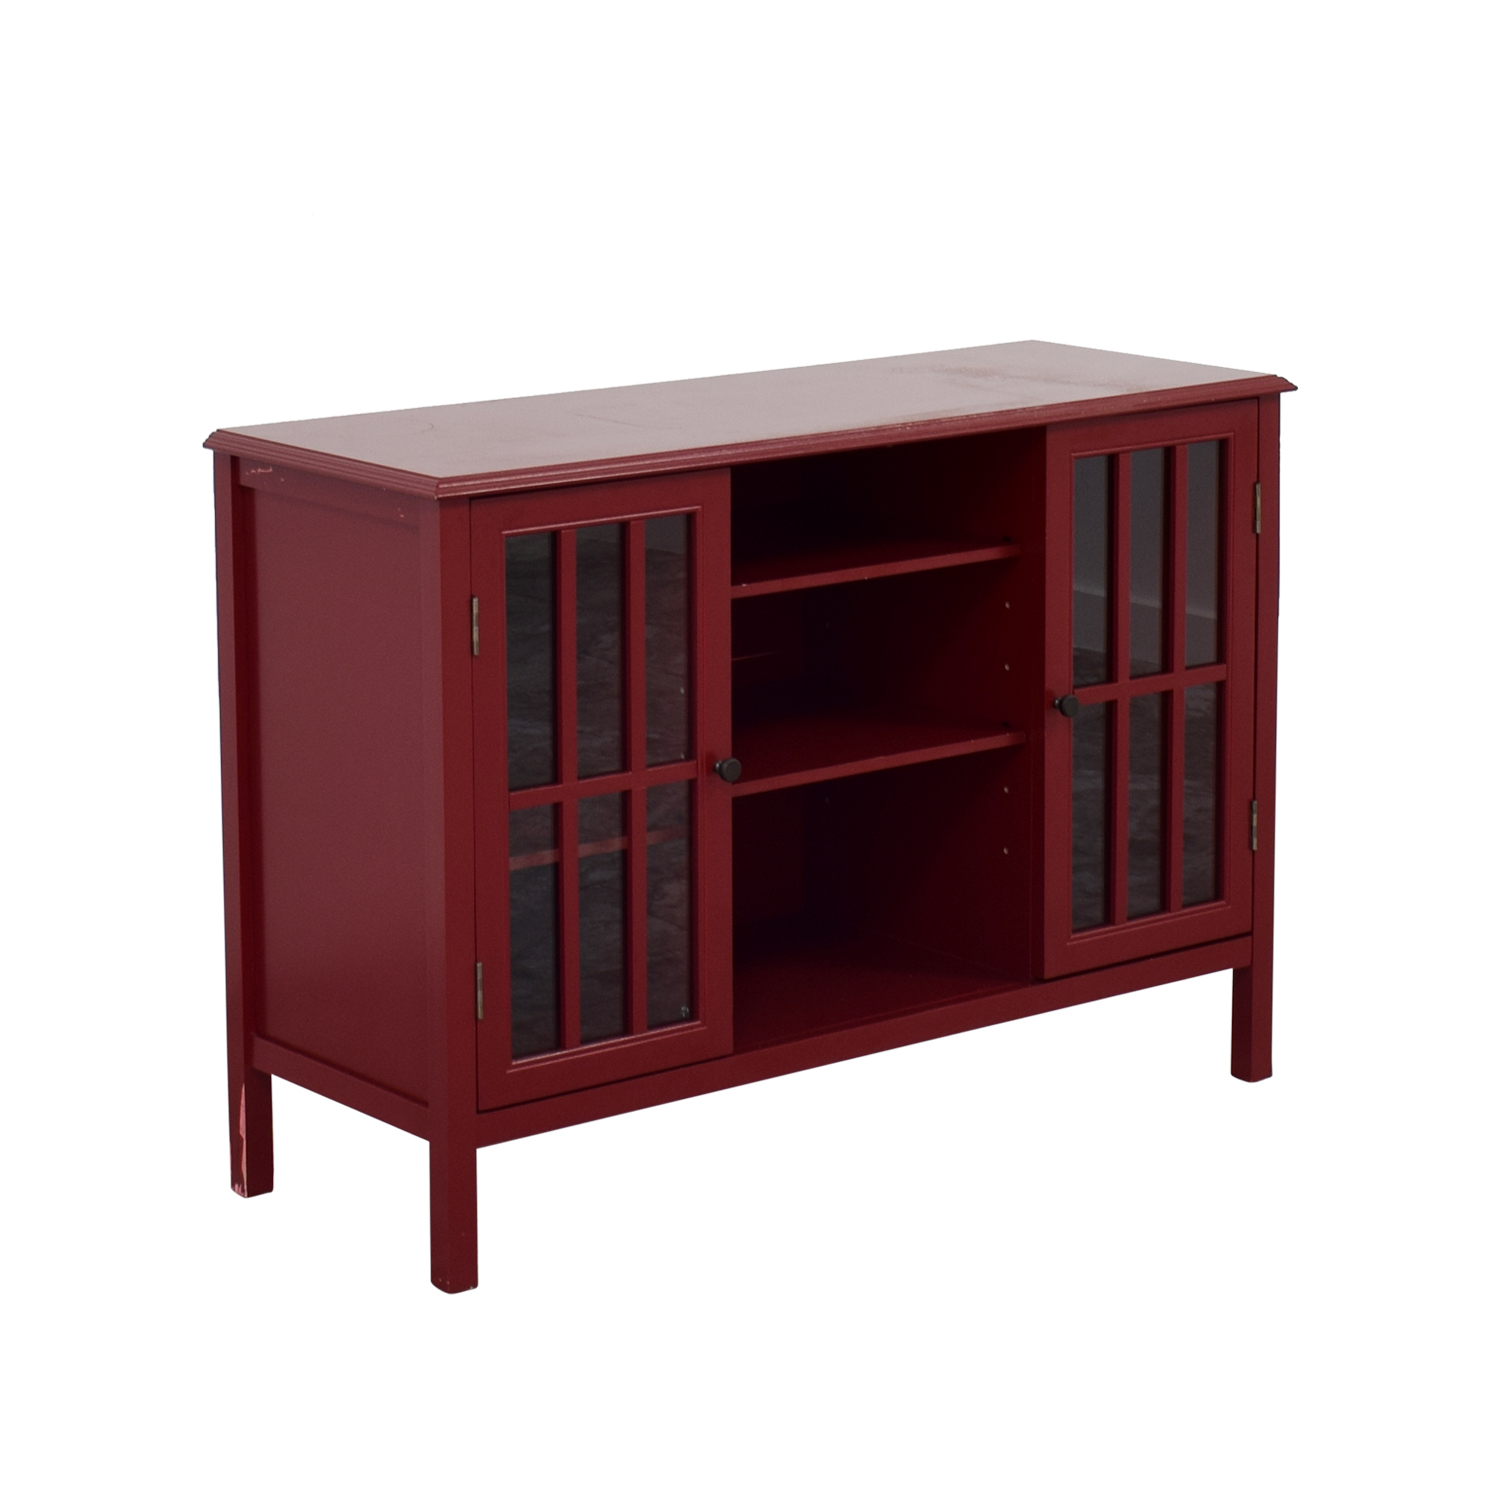 Target Furniture Delivery: Target Target Windham Two-Door Cabinet With